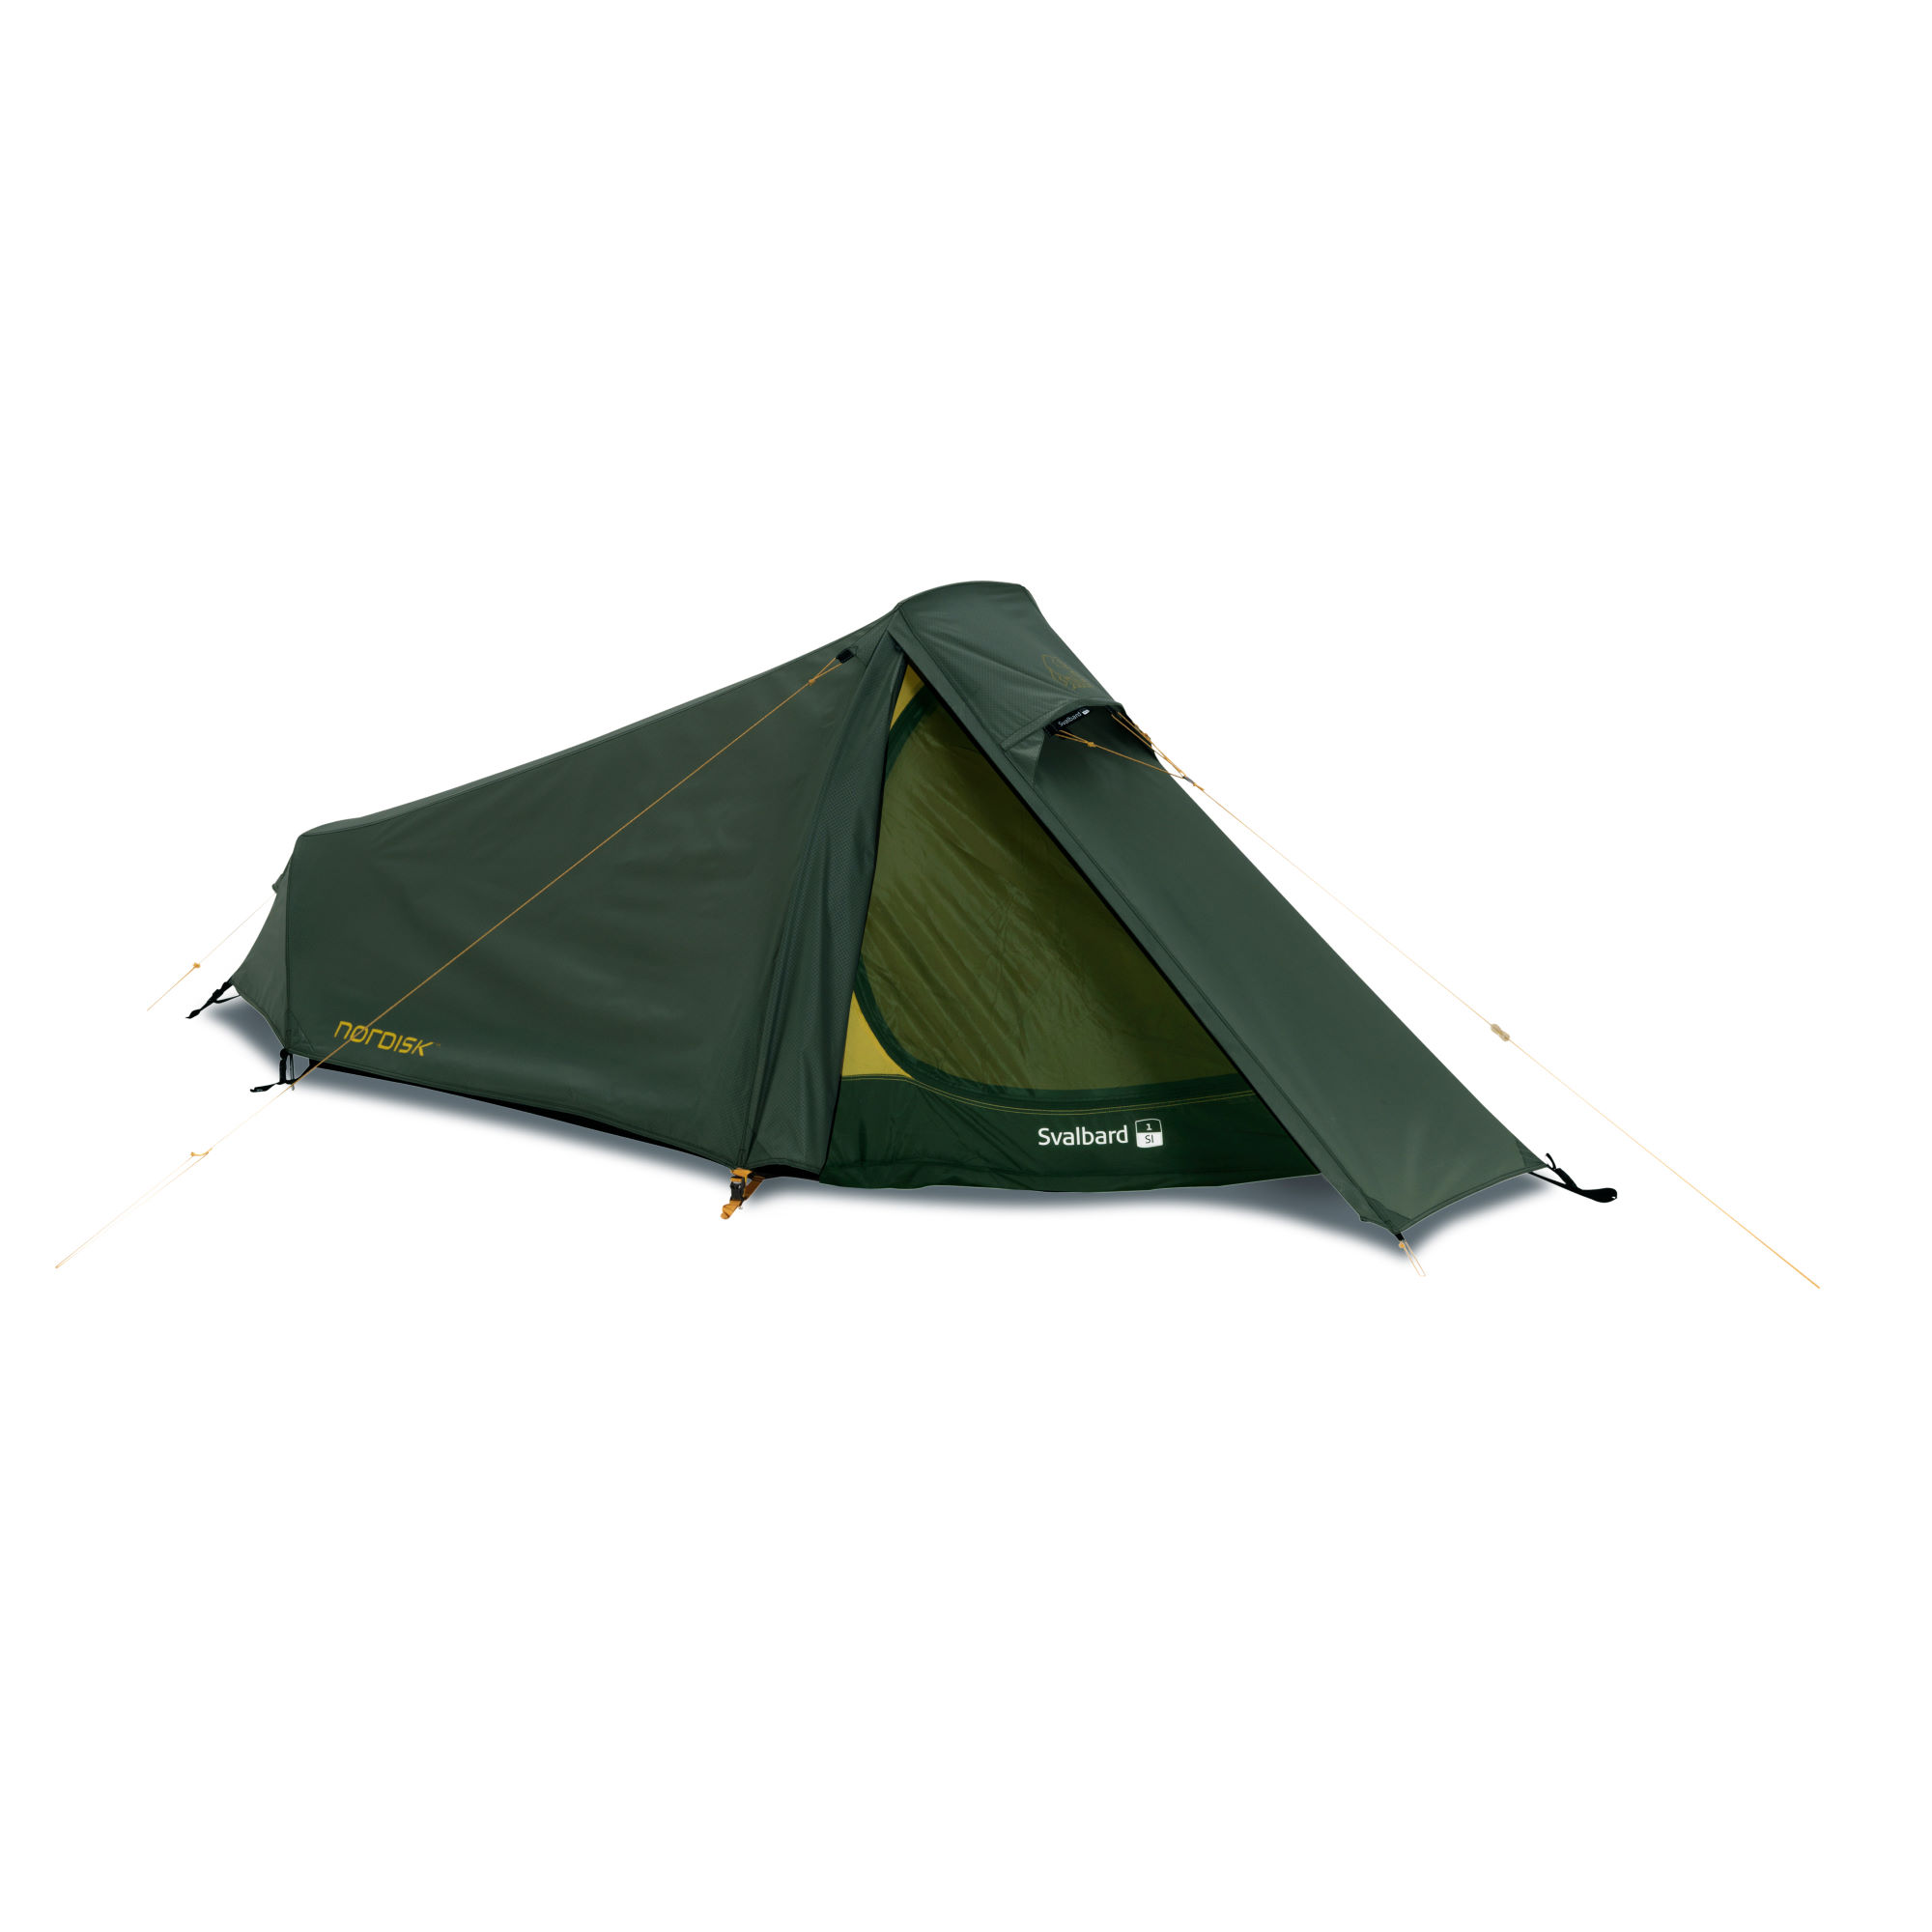 tentes nordisk svalbard 1 si one person tent wiggle. Black Bedroom Furniture Sets. Home Design Ideas